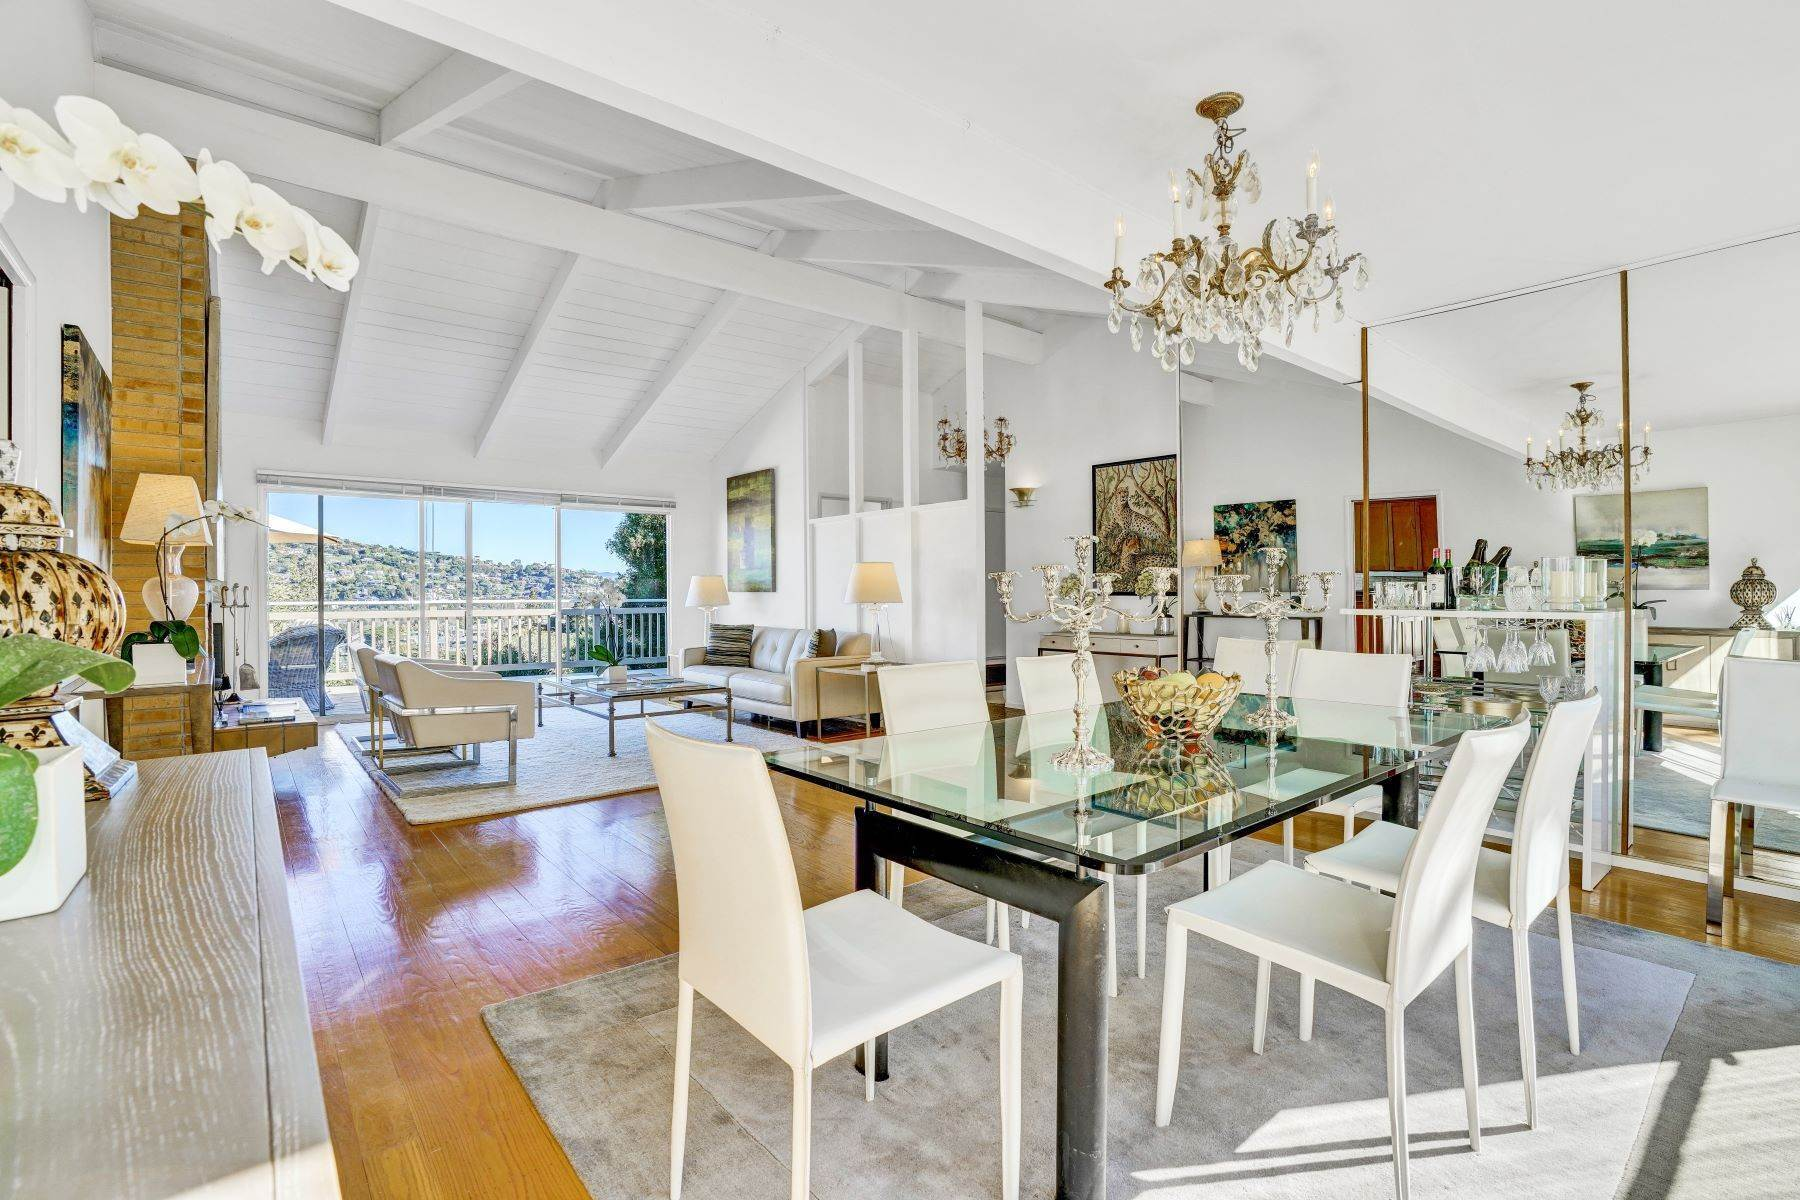 Property for Sale at Magnificent Belvedere Compound 10 Buckeye Road Belvedere, California 94920 United States